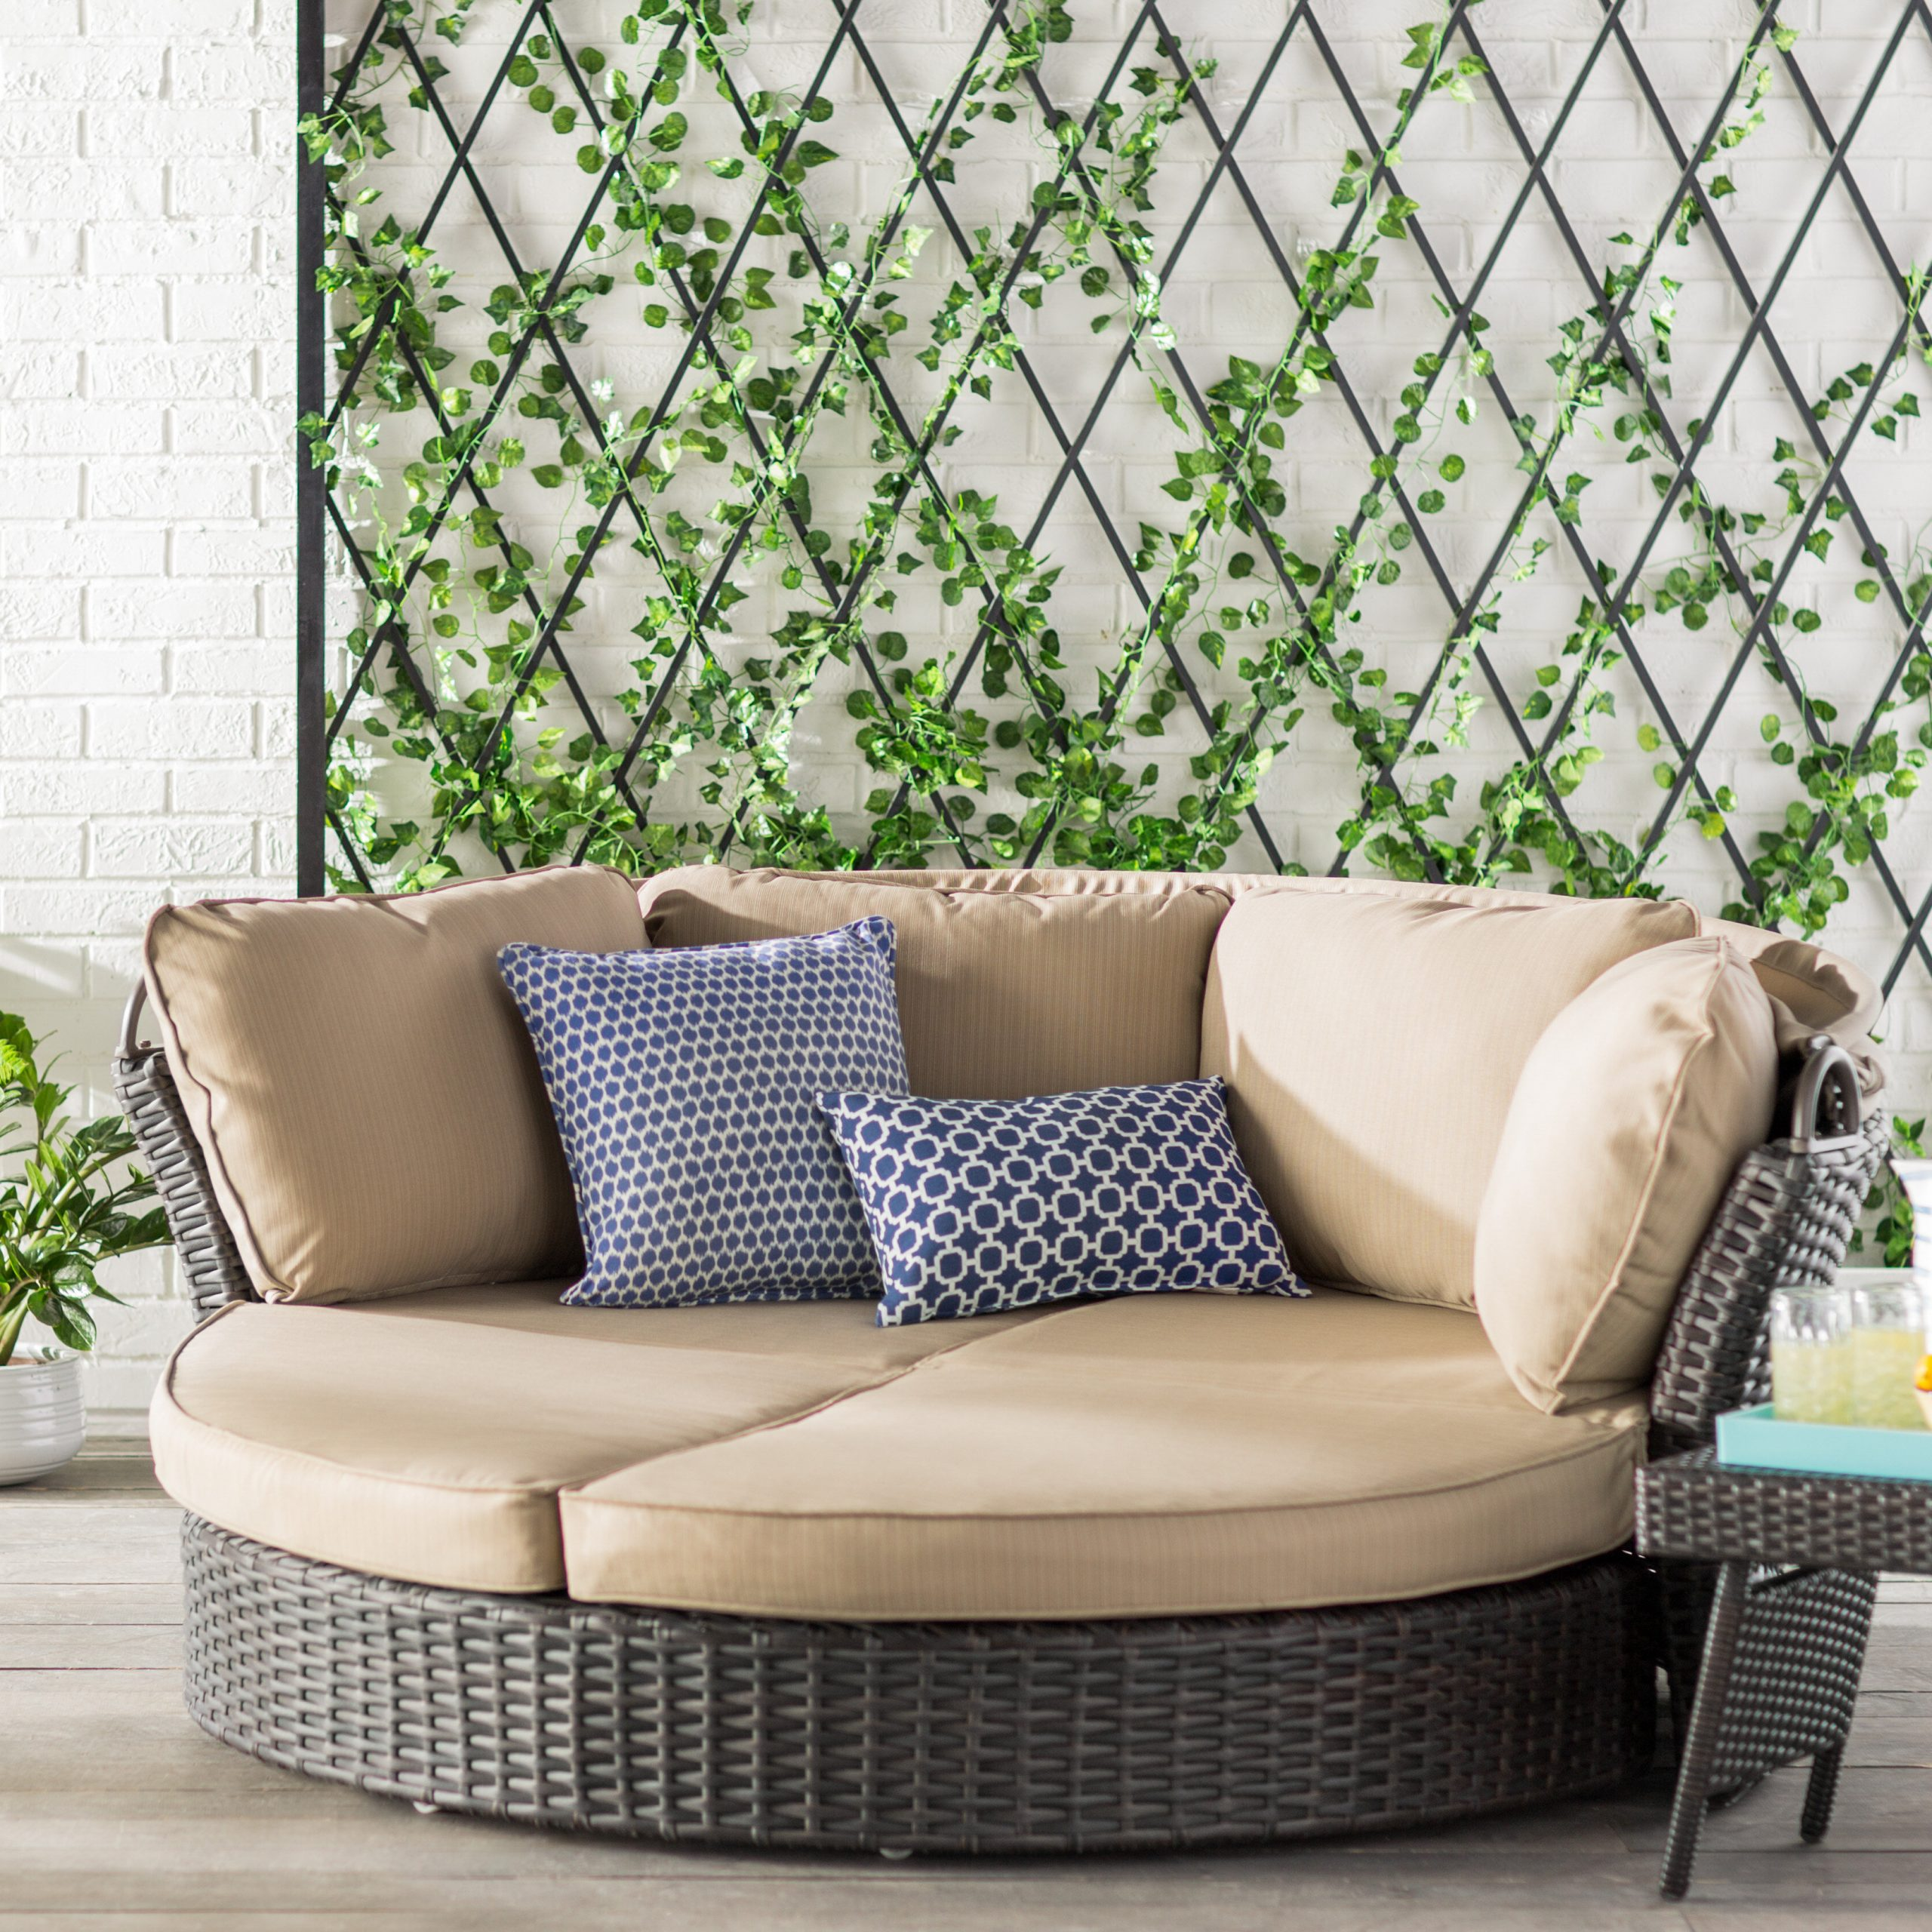 Popular Naperville Patio Daybeds With Cushion Within Tiana Patio Daybed With Cushions (View 7 of 25)